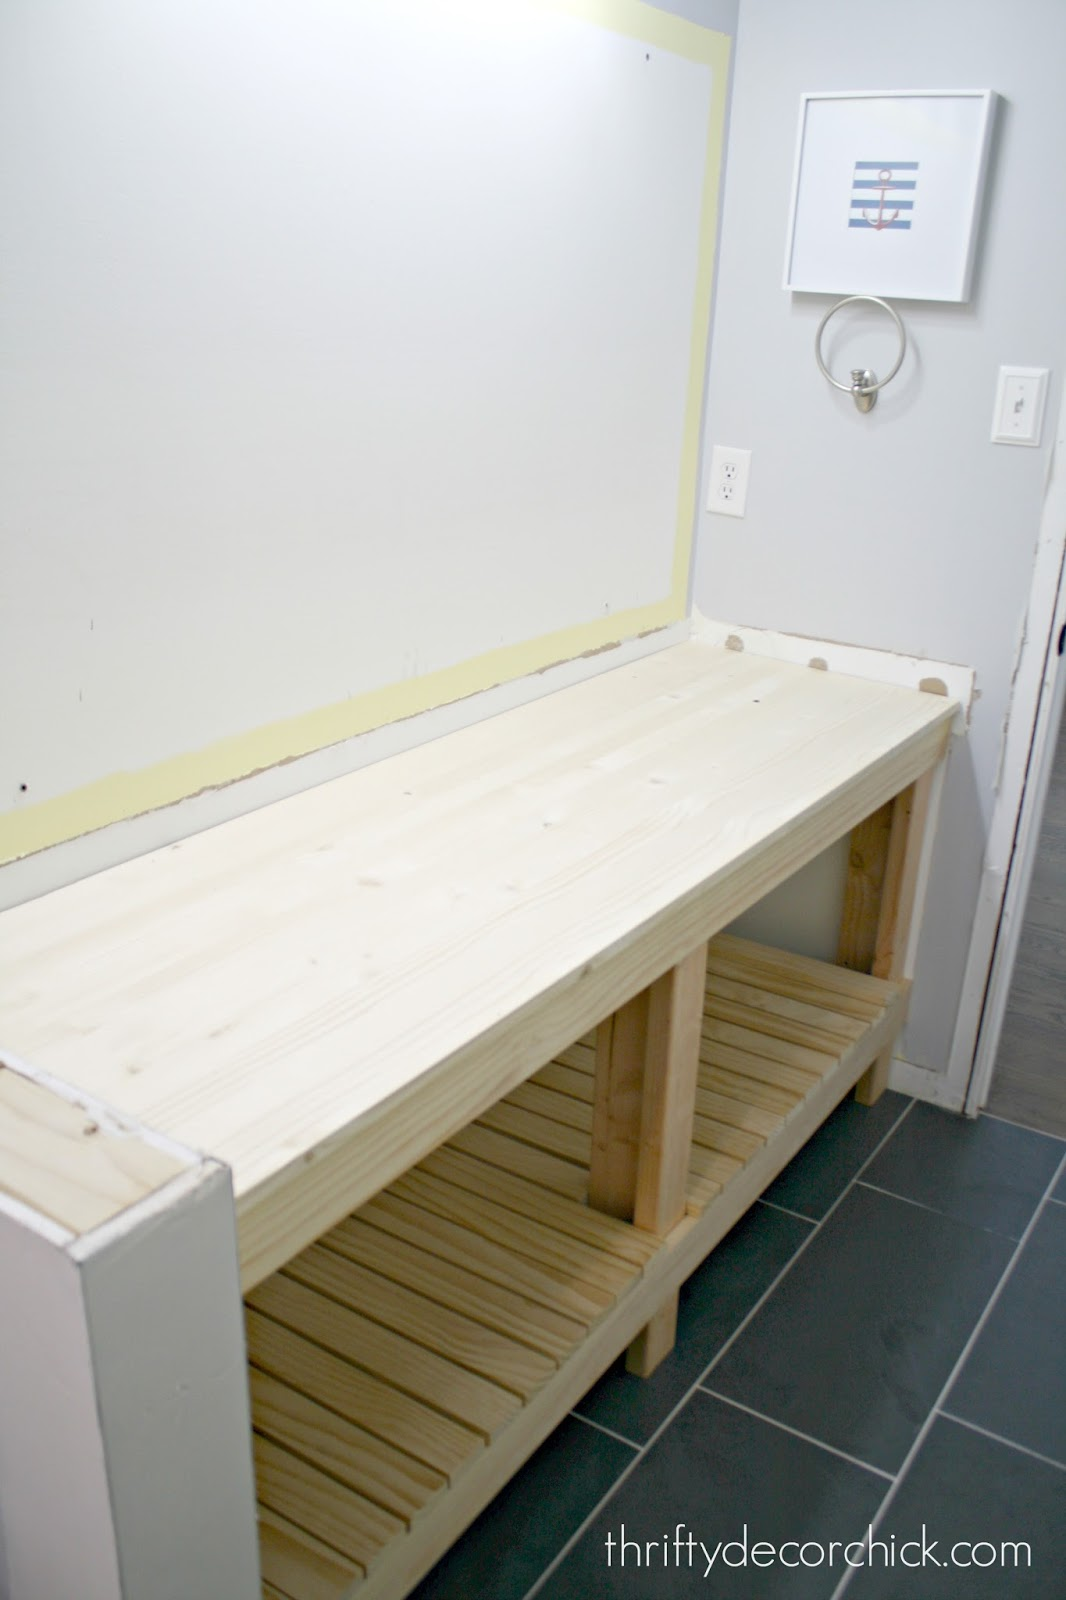 How to build a diy open bathroom vanity from thrifty decor for D i y bathroom installations